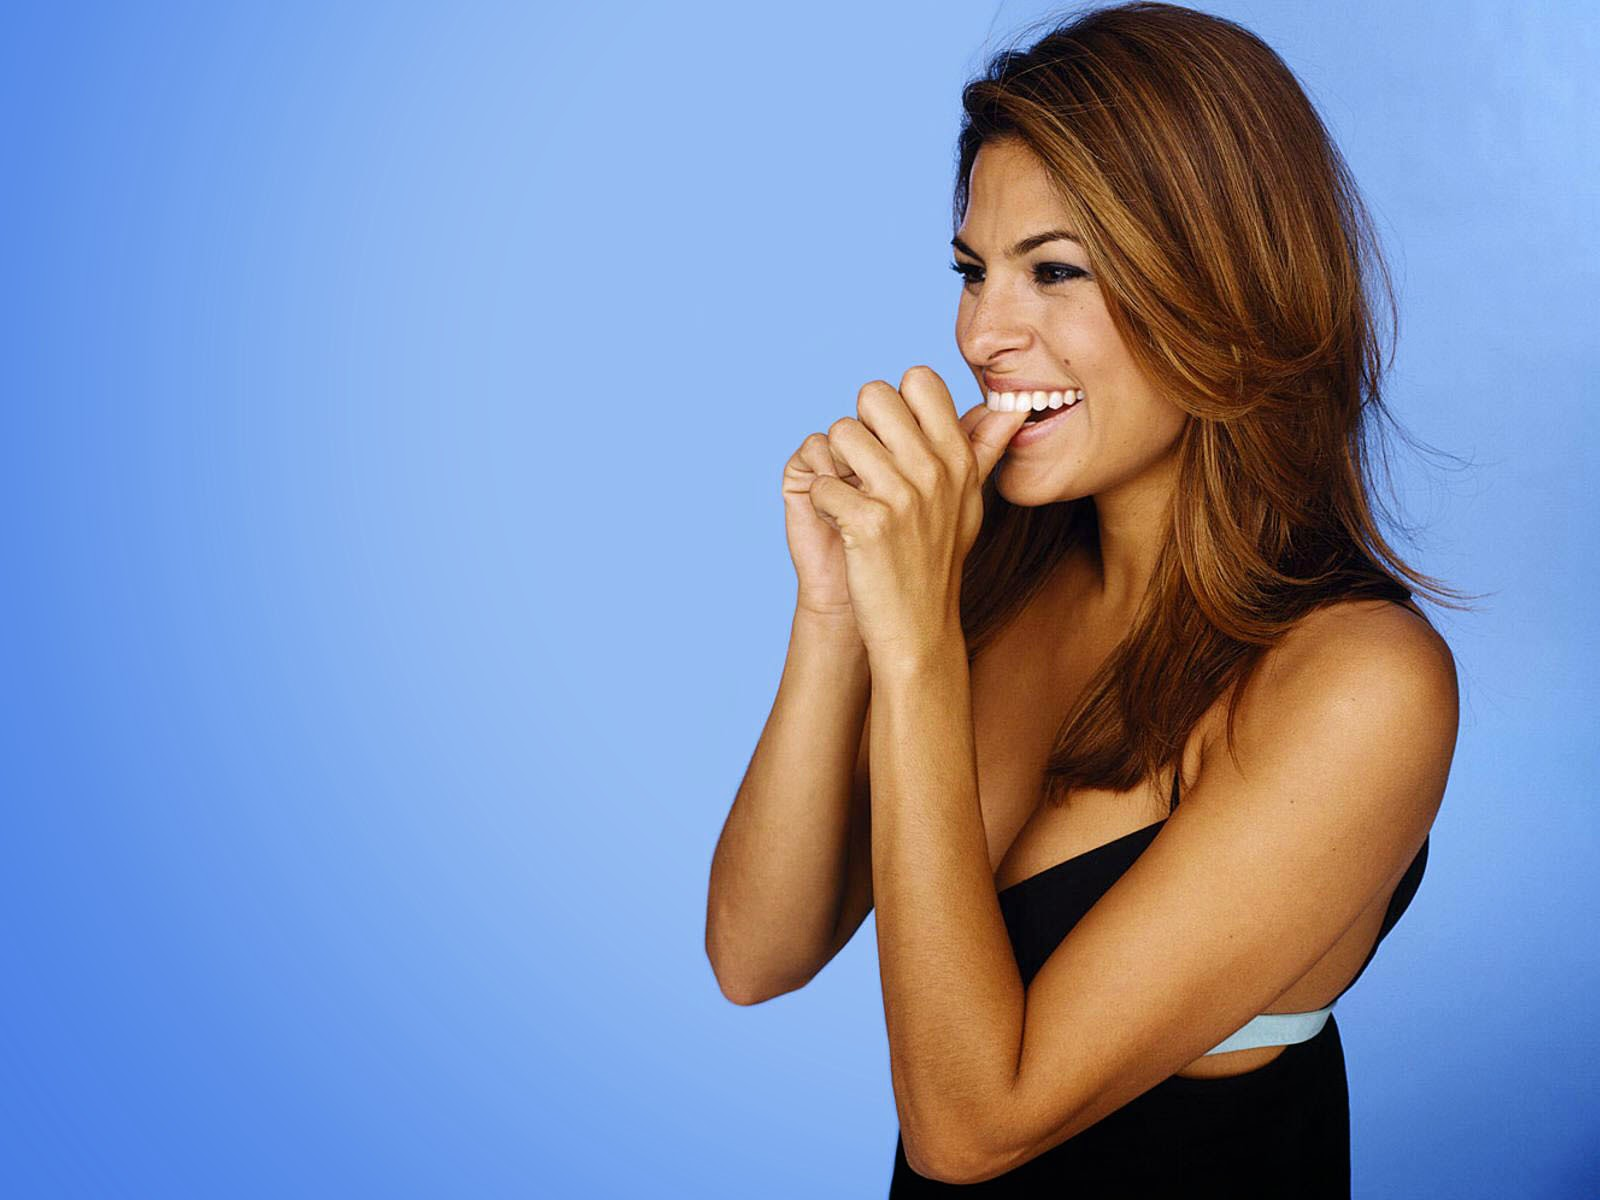 Eva mendes beautiful pose wallpaper